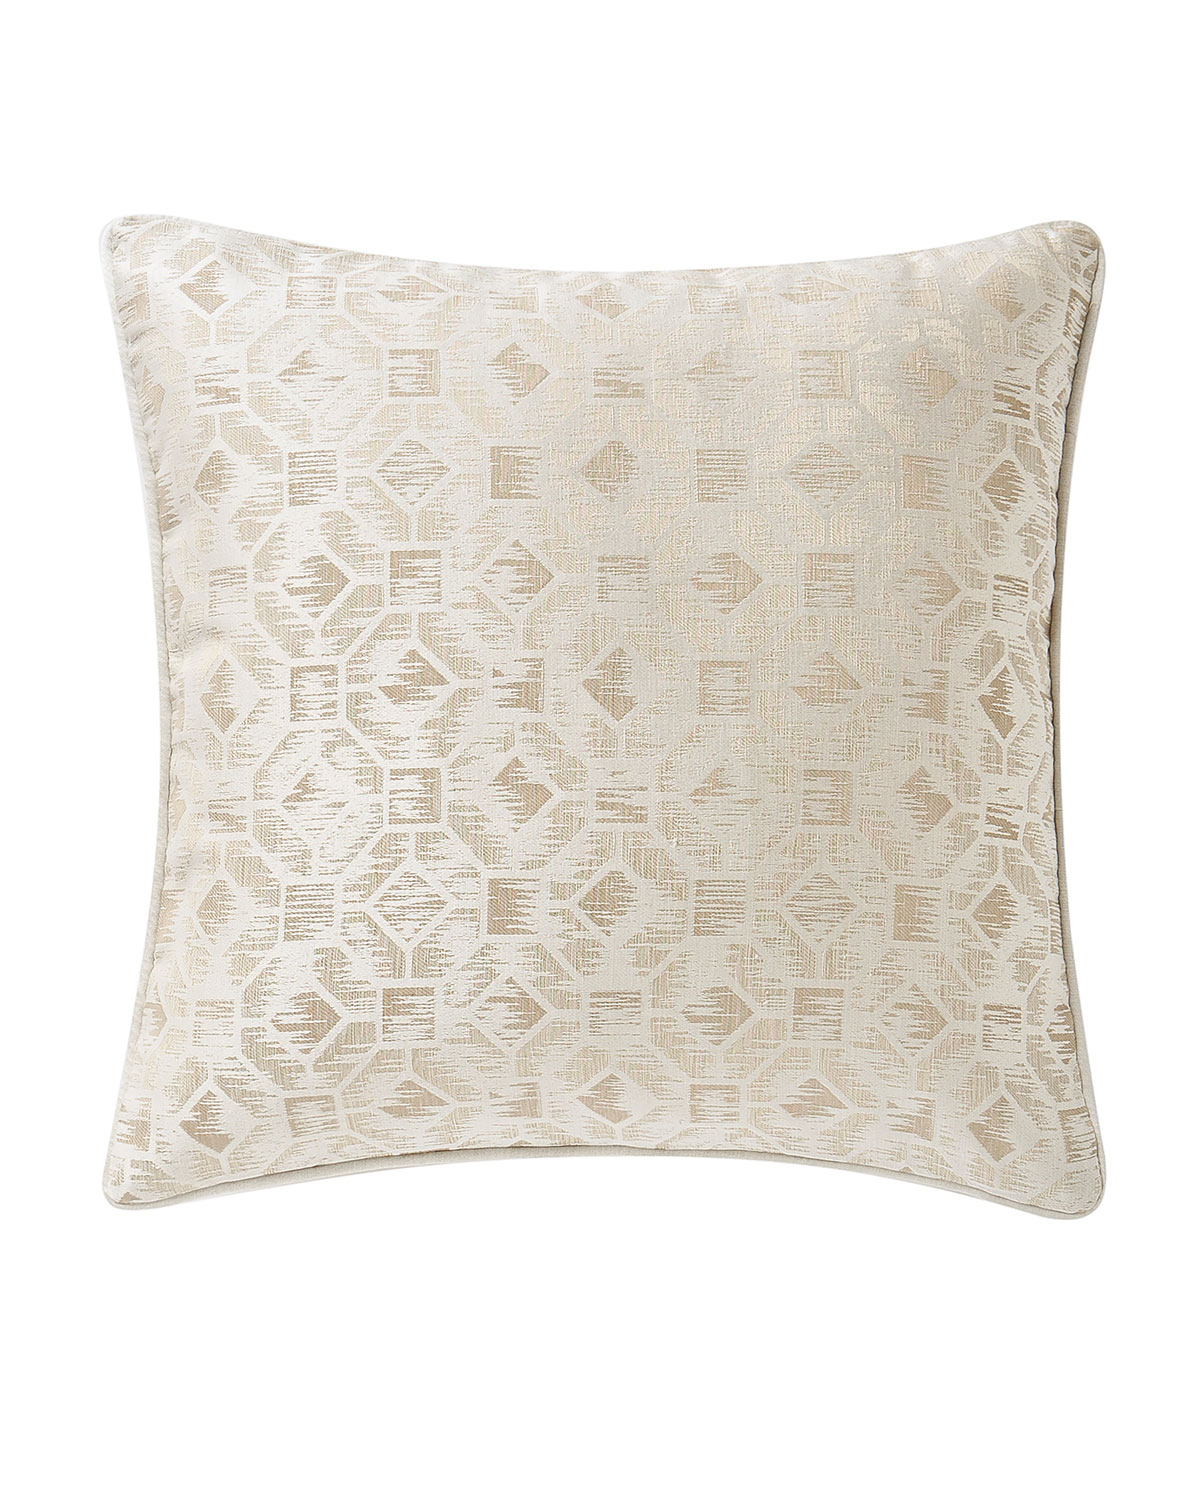 Waterford Decorative Pillows